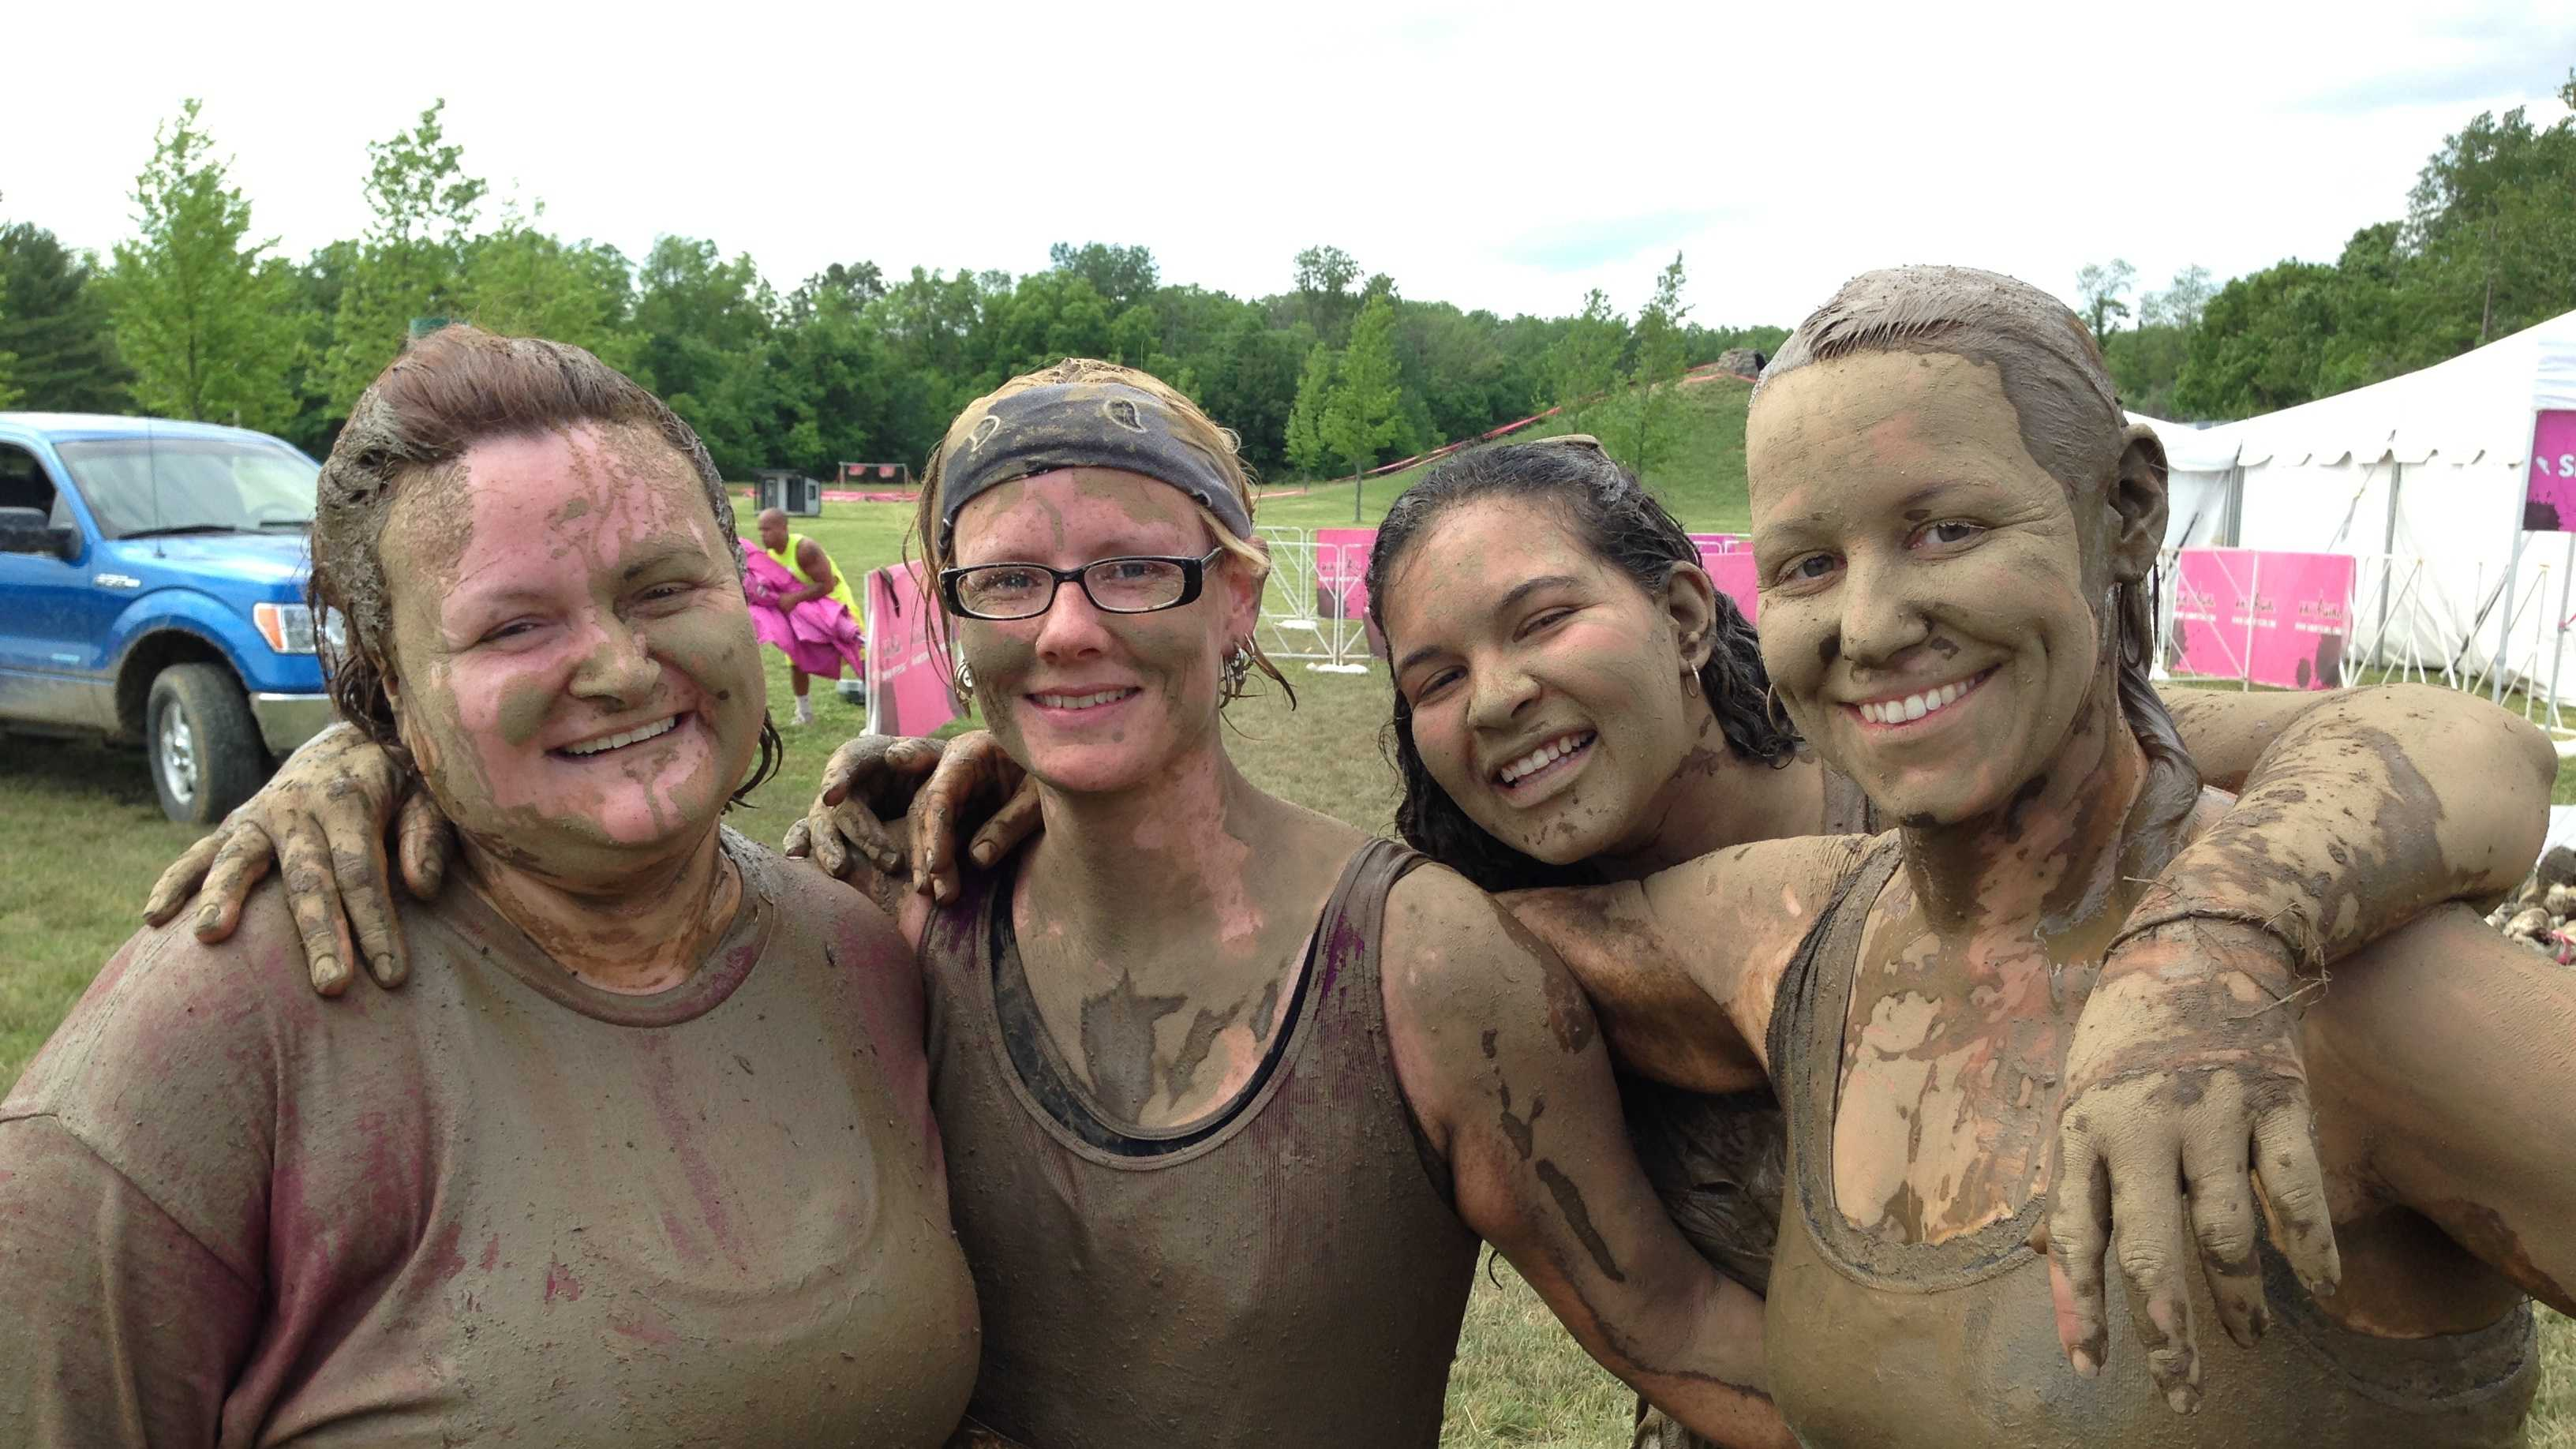 Some of the toughest women in the tri-state showed off their fitness skills Saturday at the first local Dirty Girl Mud Run.